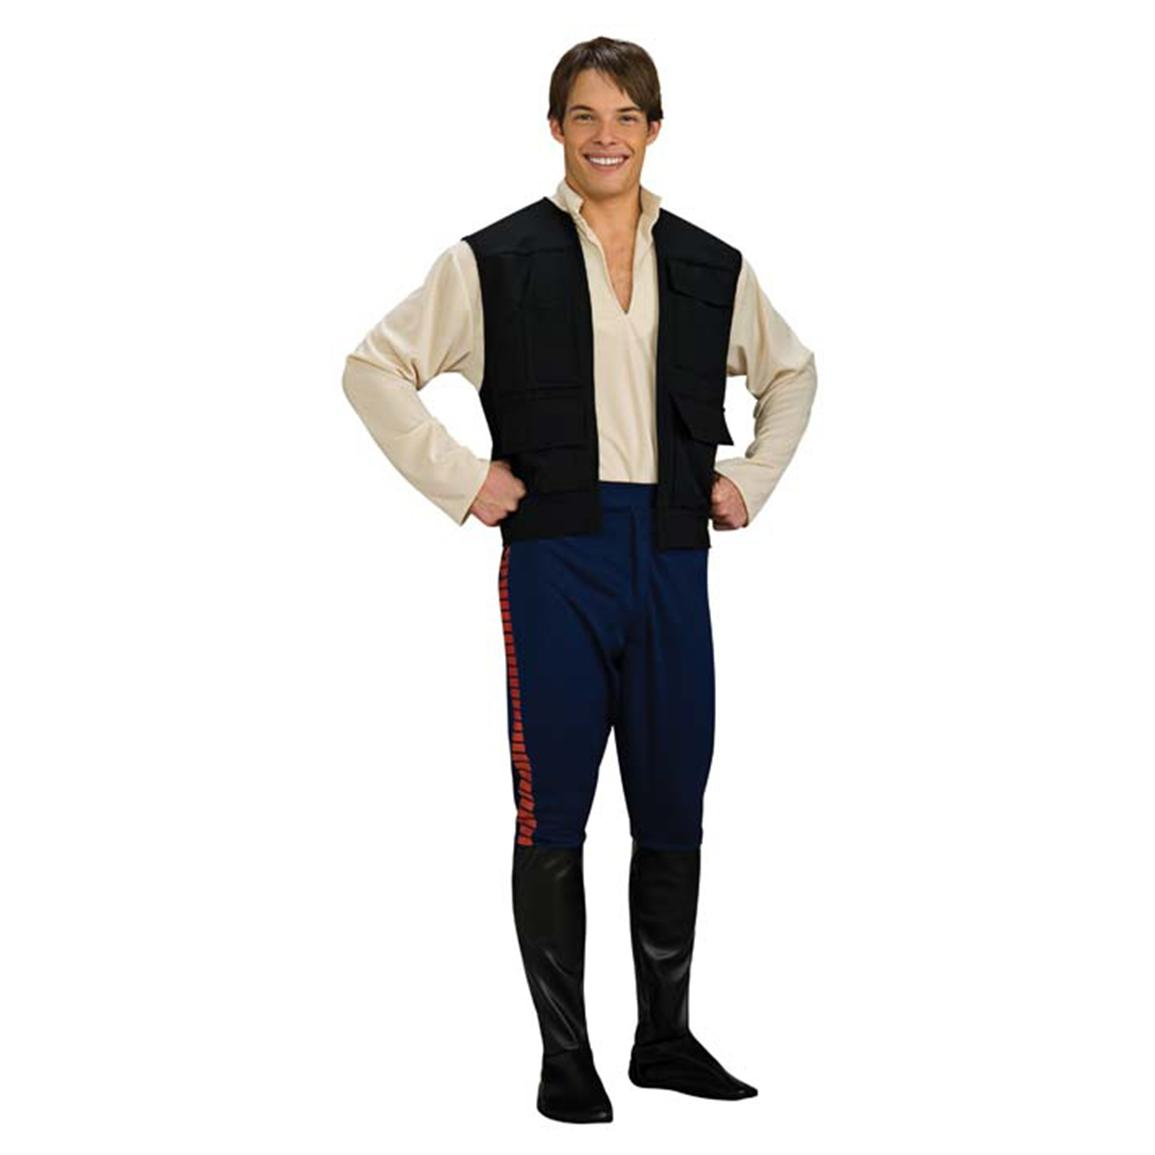 Morris Costumes Star Wars™ Deluxe Han Solo Costume